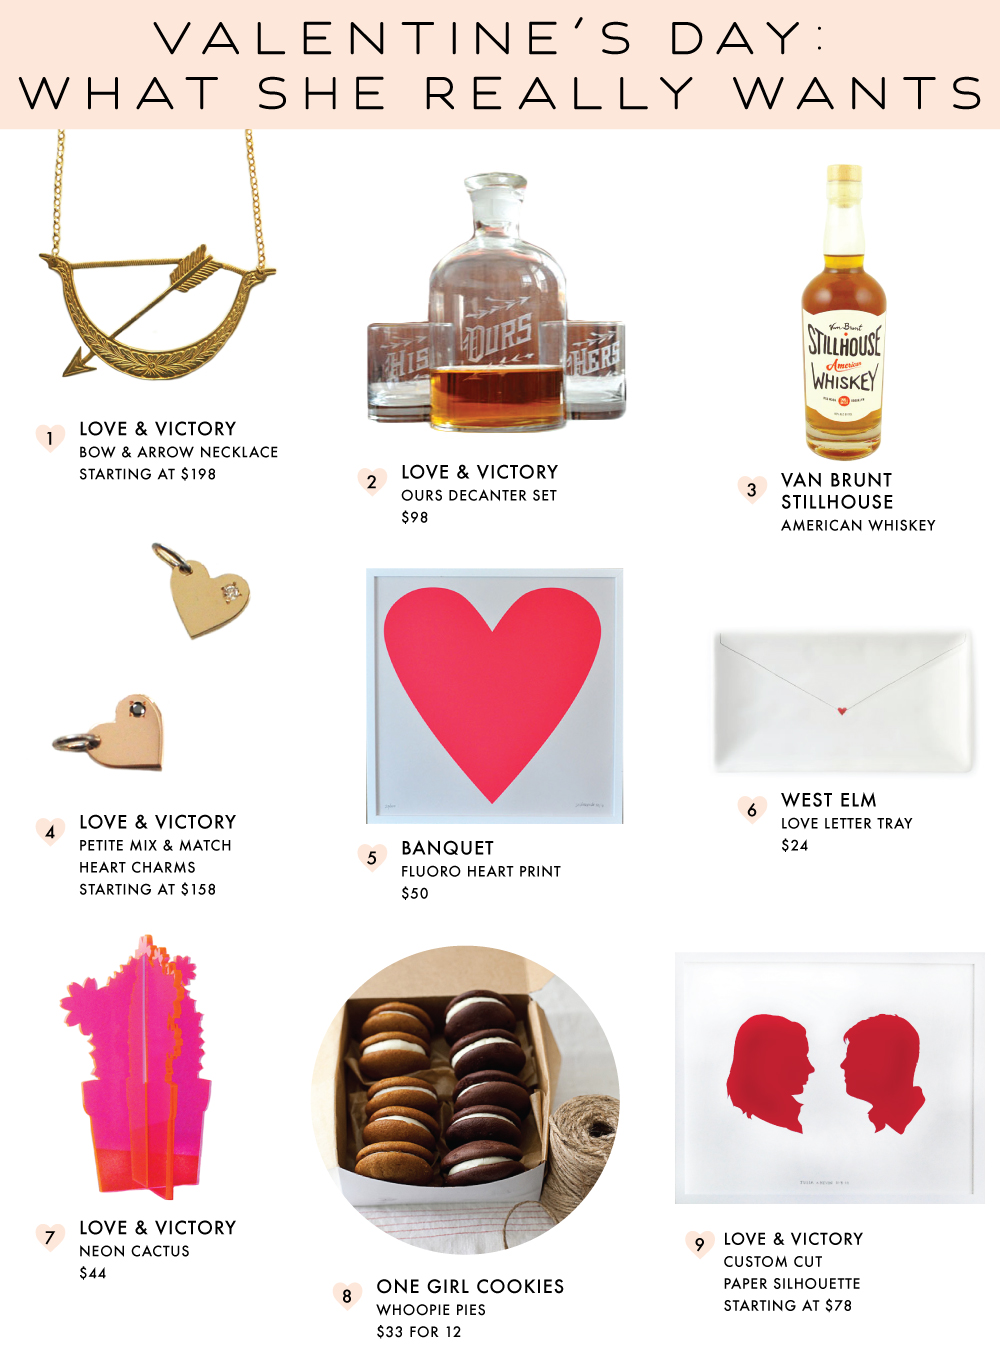 VALENTINES-DAY-GIFT-GUIDE-2015-blog.jpg